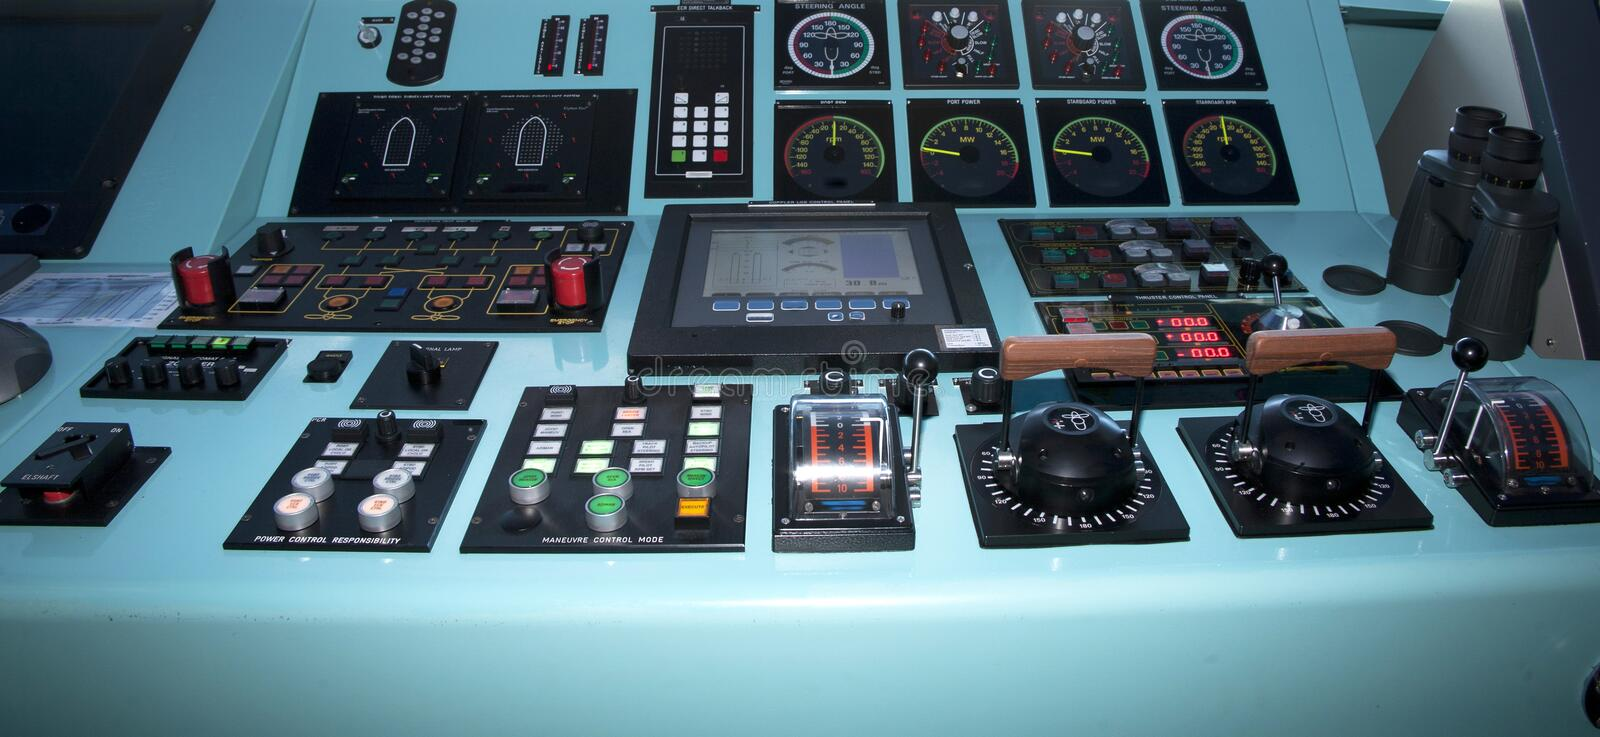 Download Ships Controls stock image. Image of boat, controls, cruise - 26386793